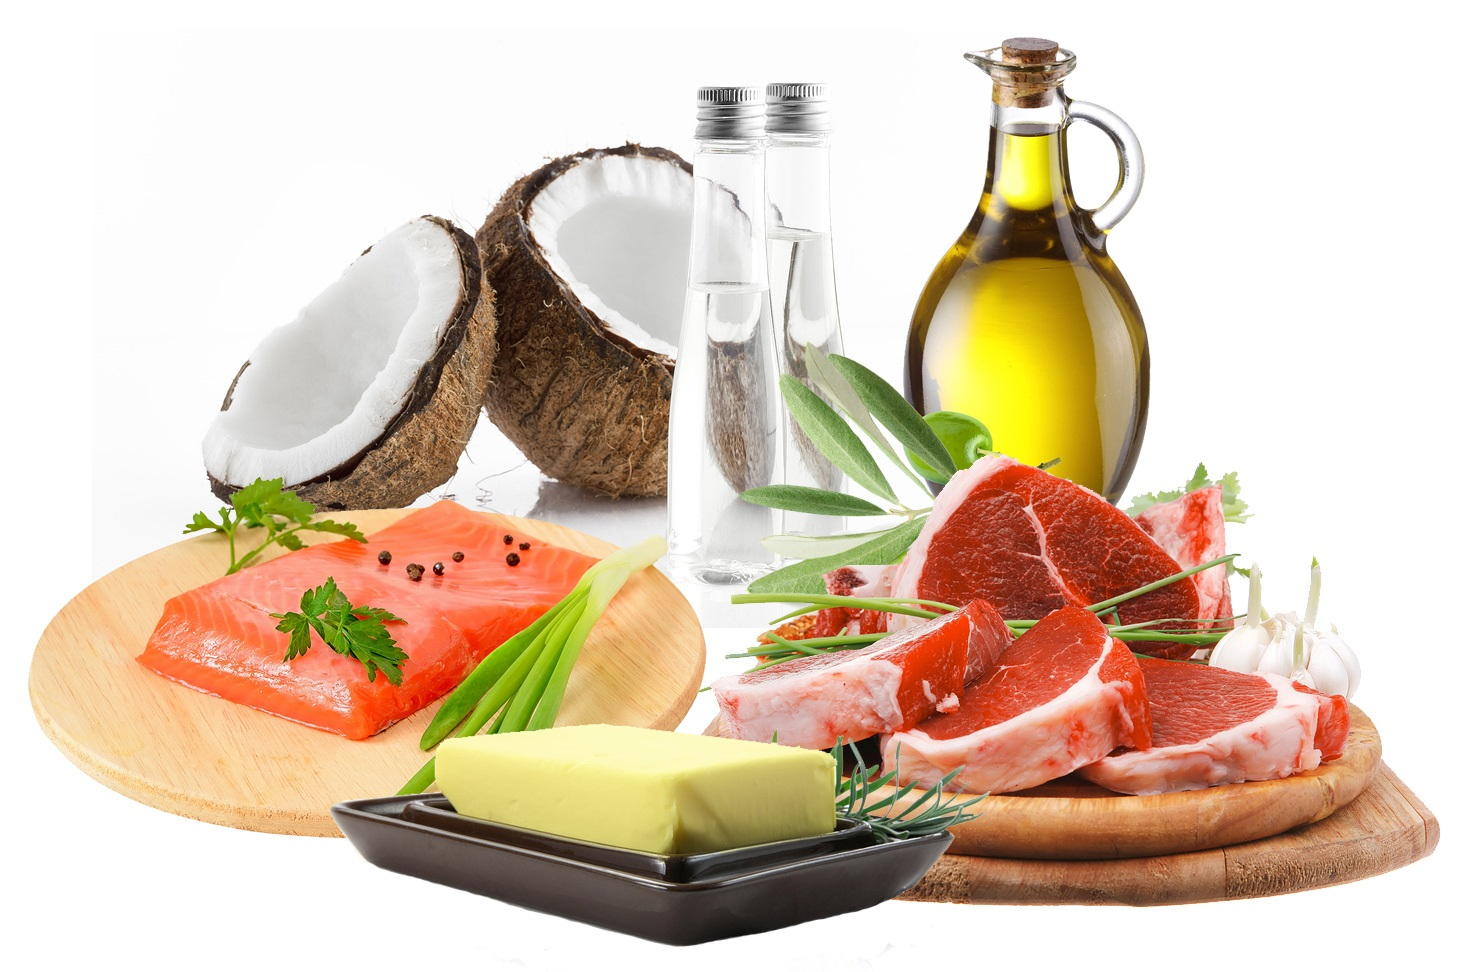 ASK THE DOCTOR: The Pros and Cons of the Keto Diet